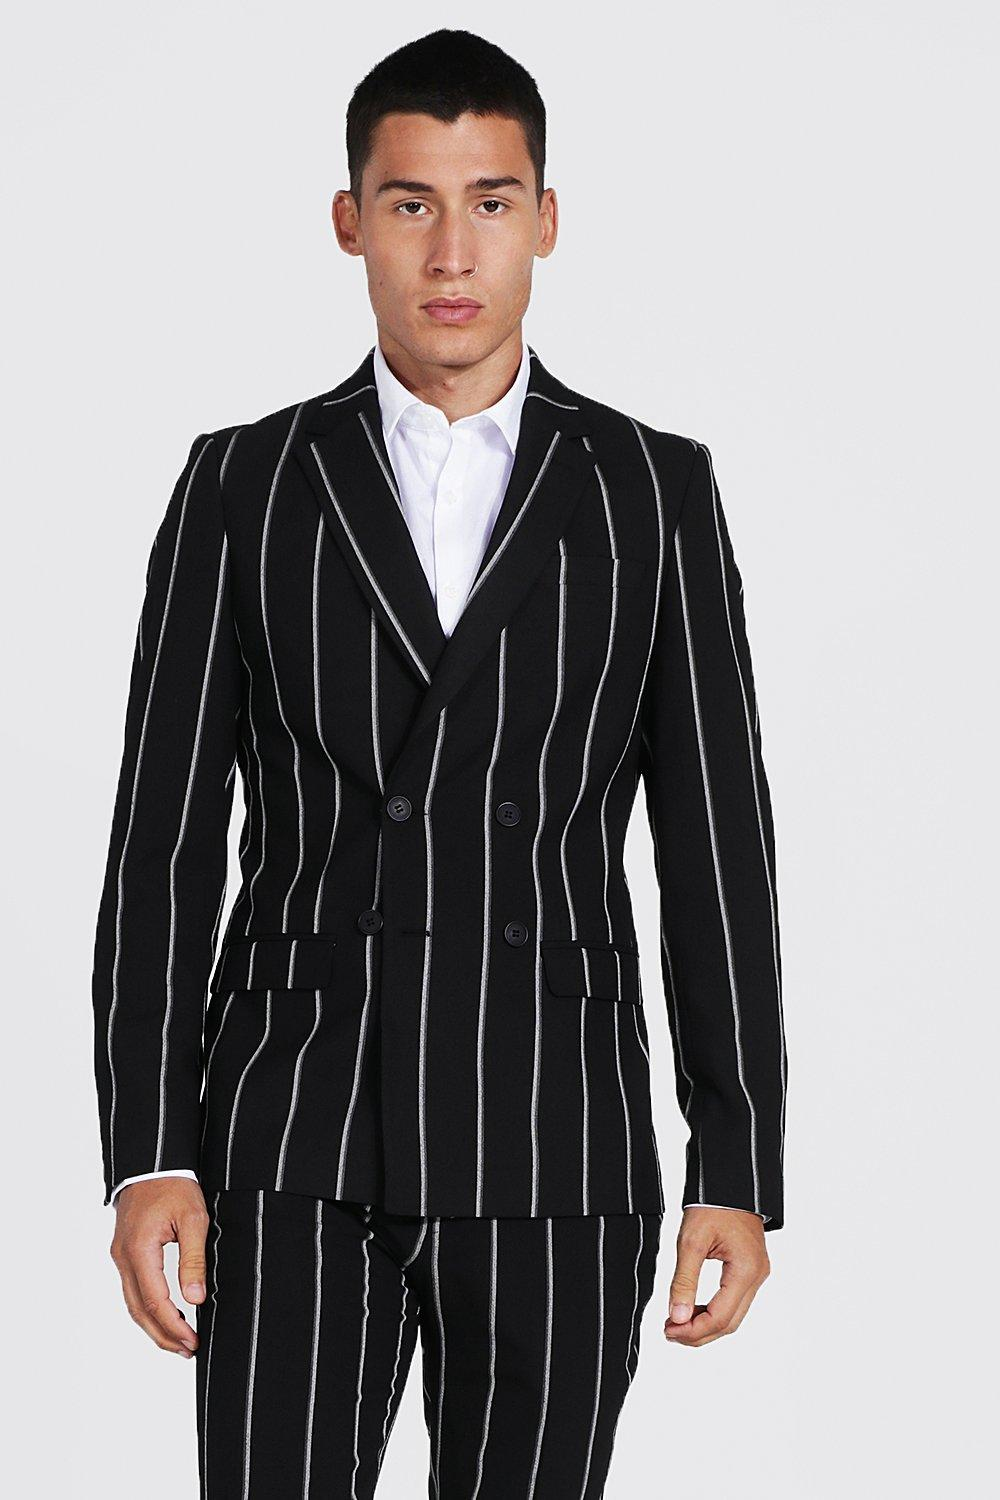 1970s Men's Suits History | Sport Coats & Tuxedos Mens Double Breasted Skinny Pinstripe Suit Jacket - Black $57.00 AT vintagedancer.com